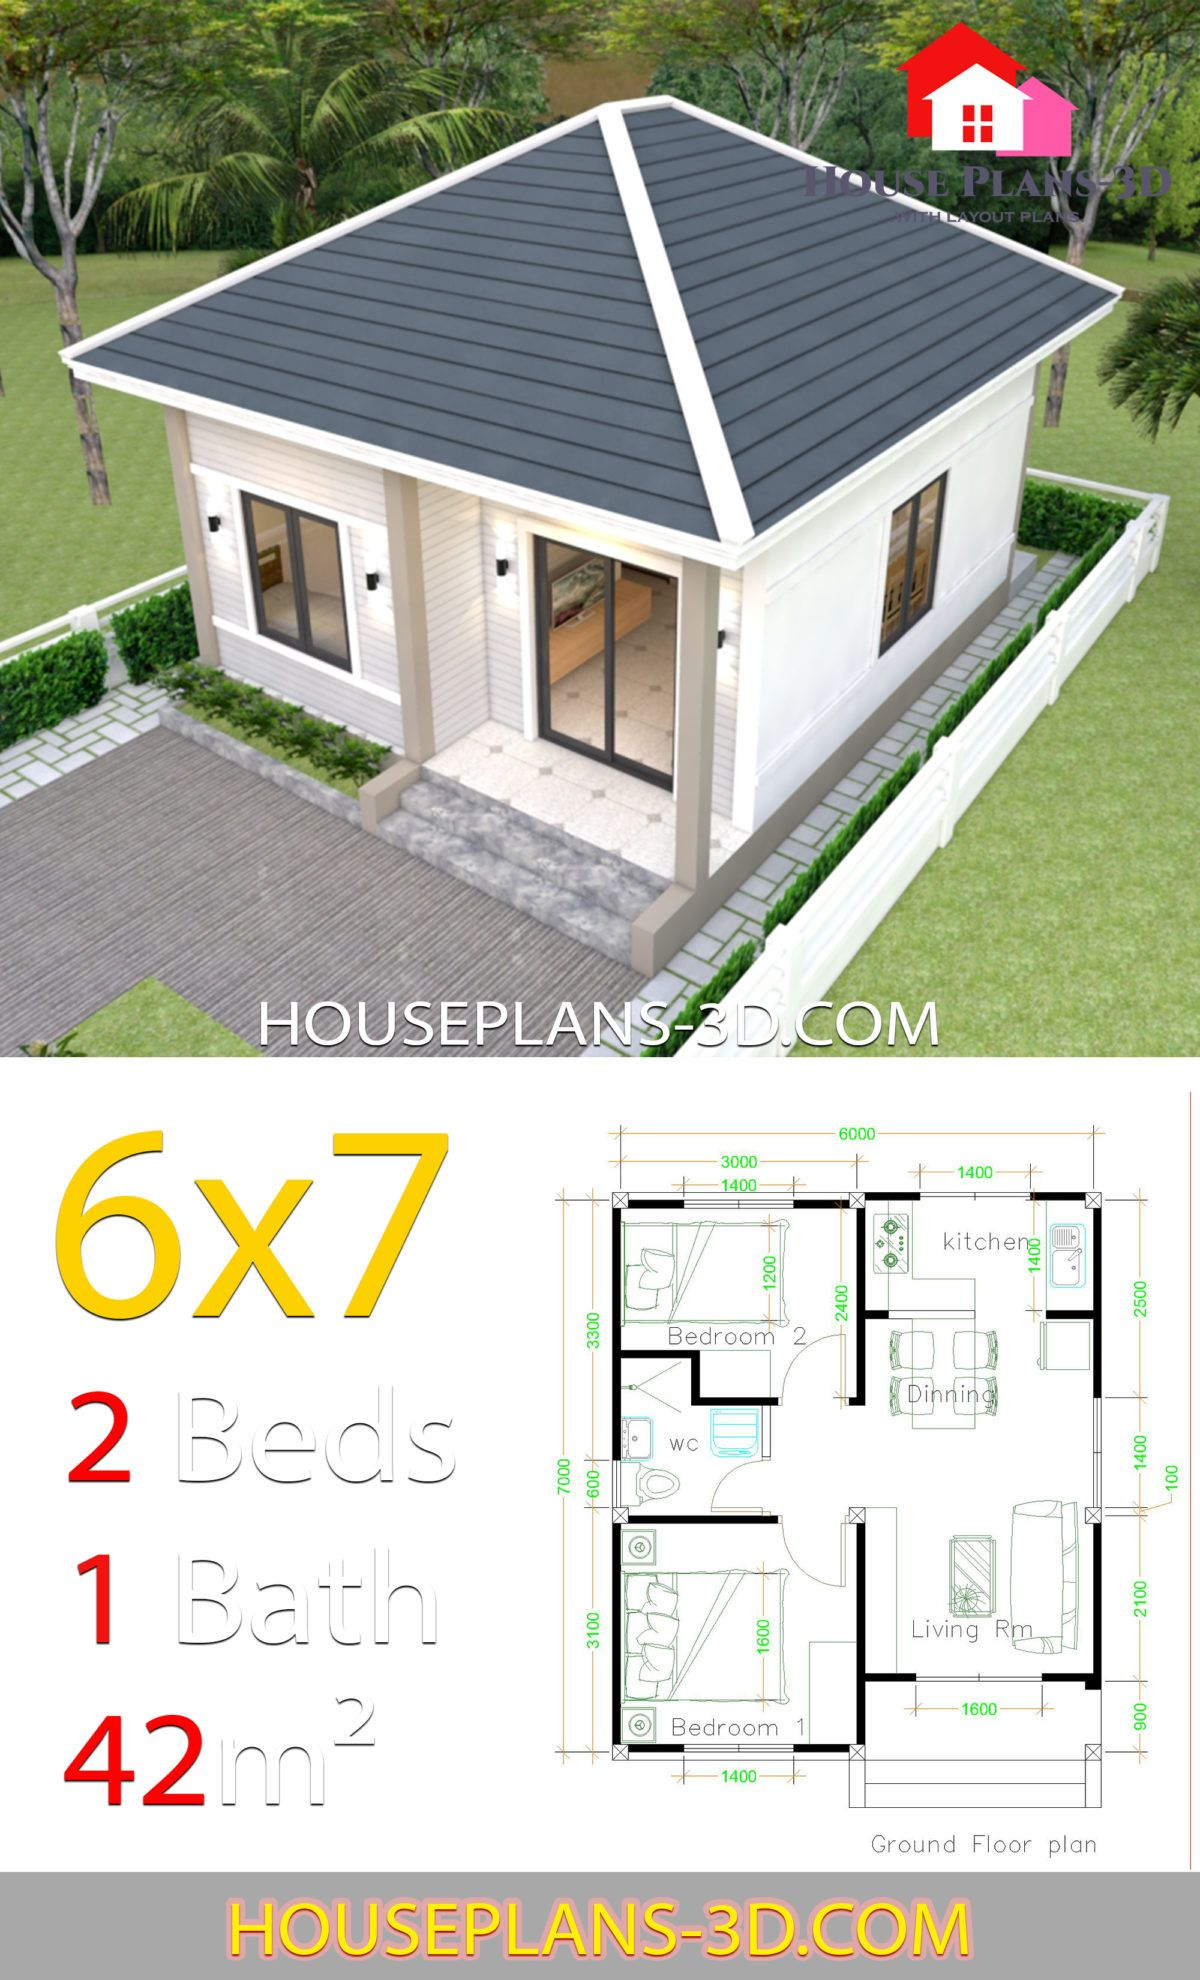 Simple House Plans 6x7 With 2 Bedrooms Hip Roof House Plans 3d Small House Design Plans Little House Plans Small House Design